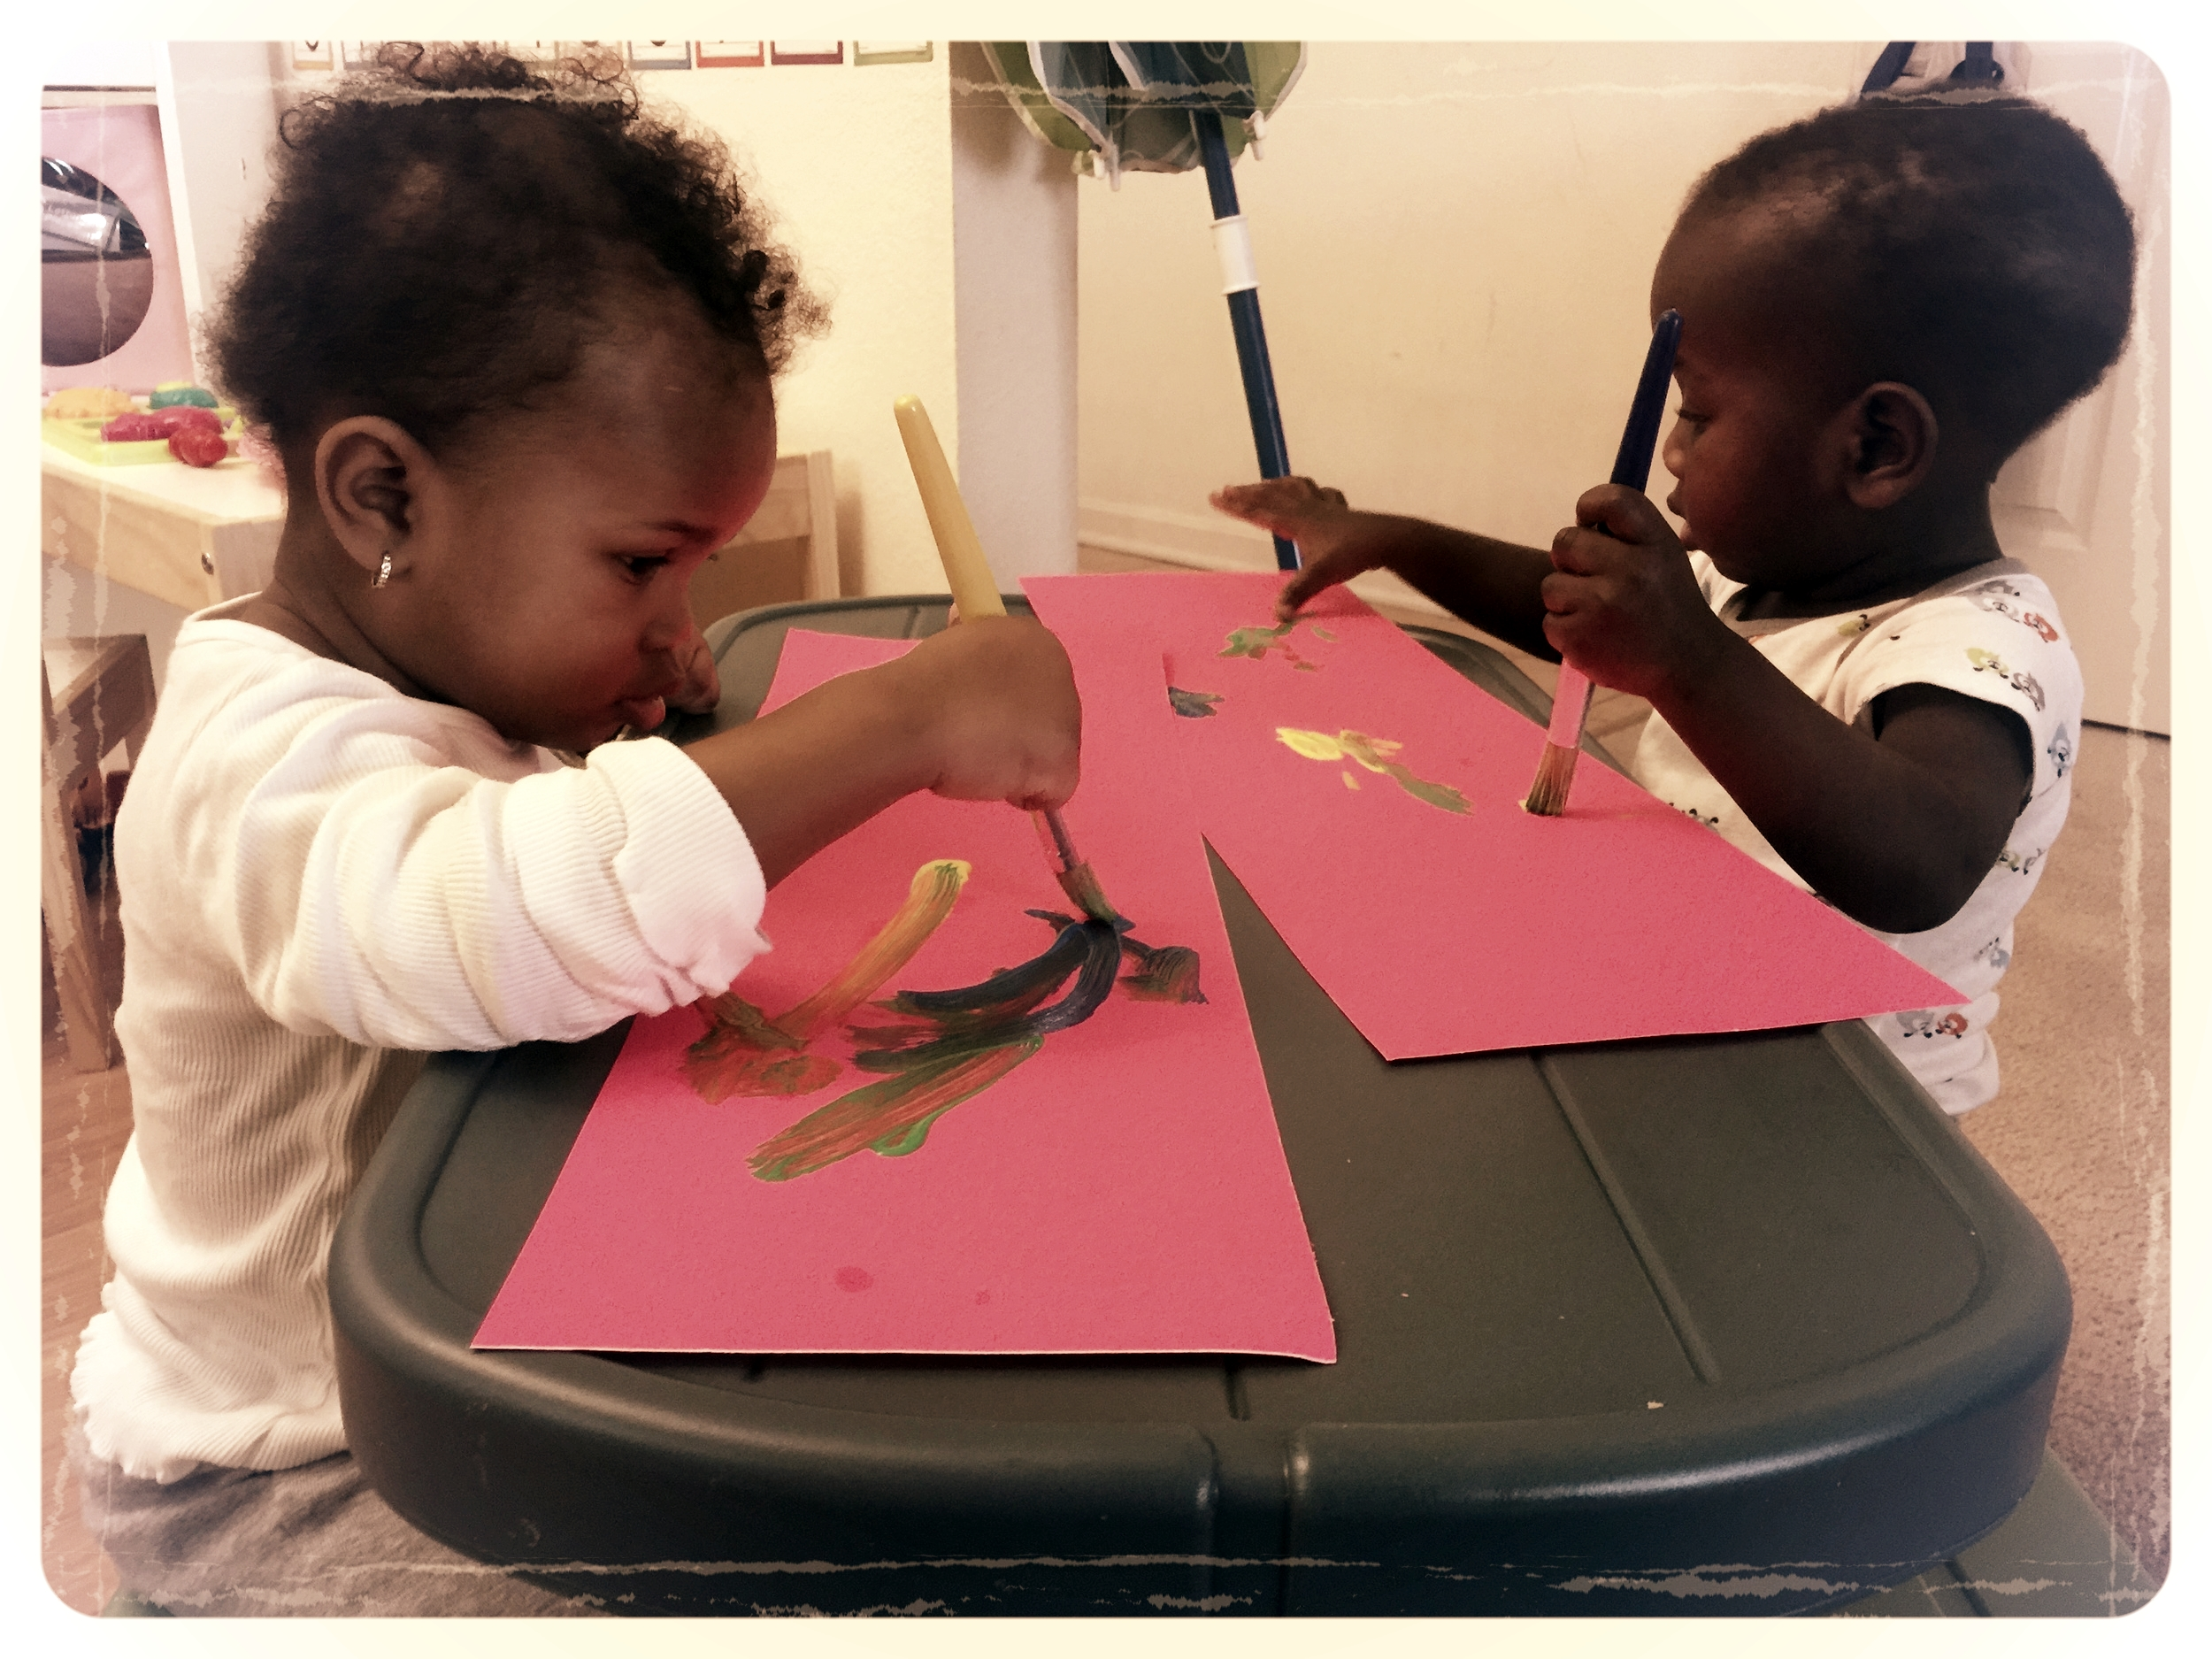 Masters of Their Own Paintbrush